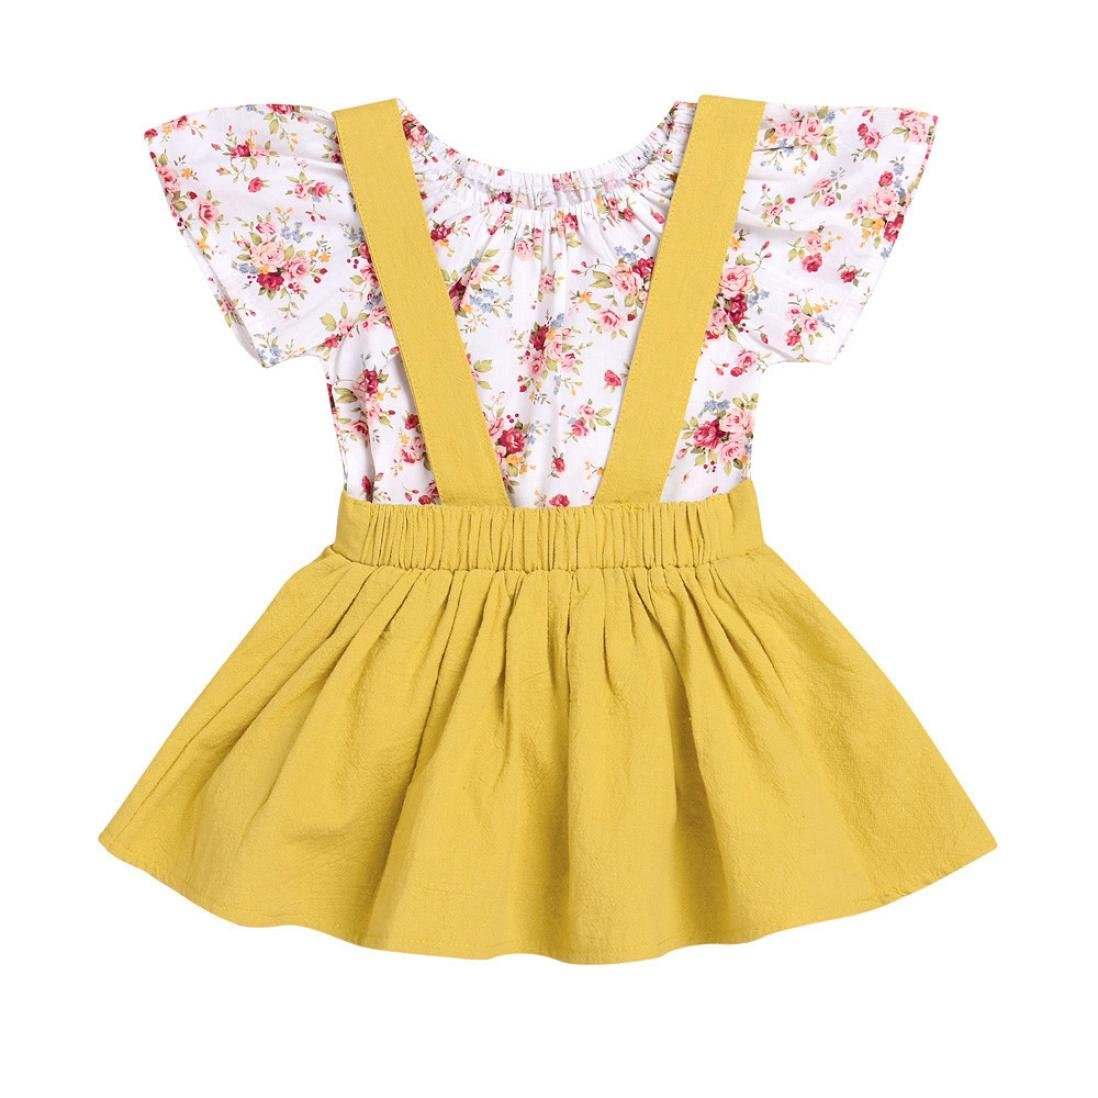 Tenworld 2Pcs Baby Girls Outfits Floral Print Rompers Jumpsuit + Suspender Skirt Set